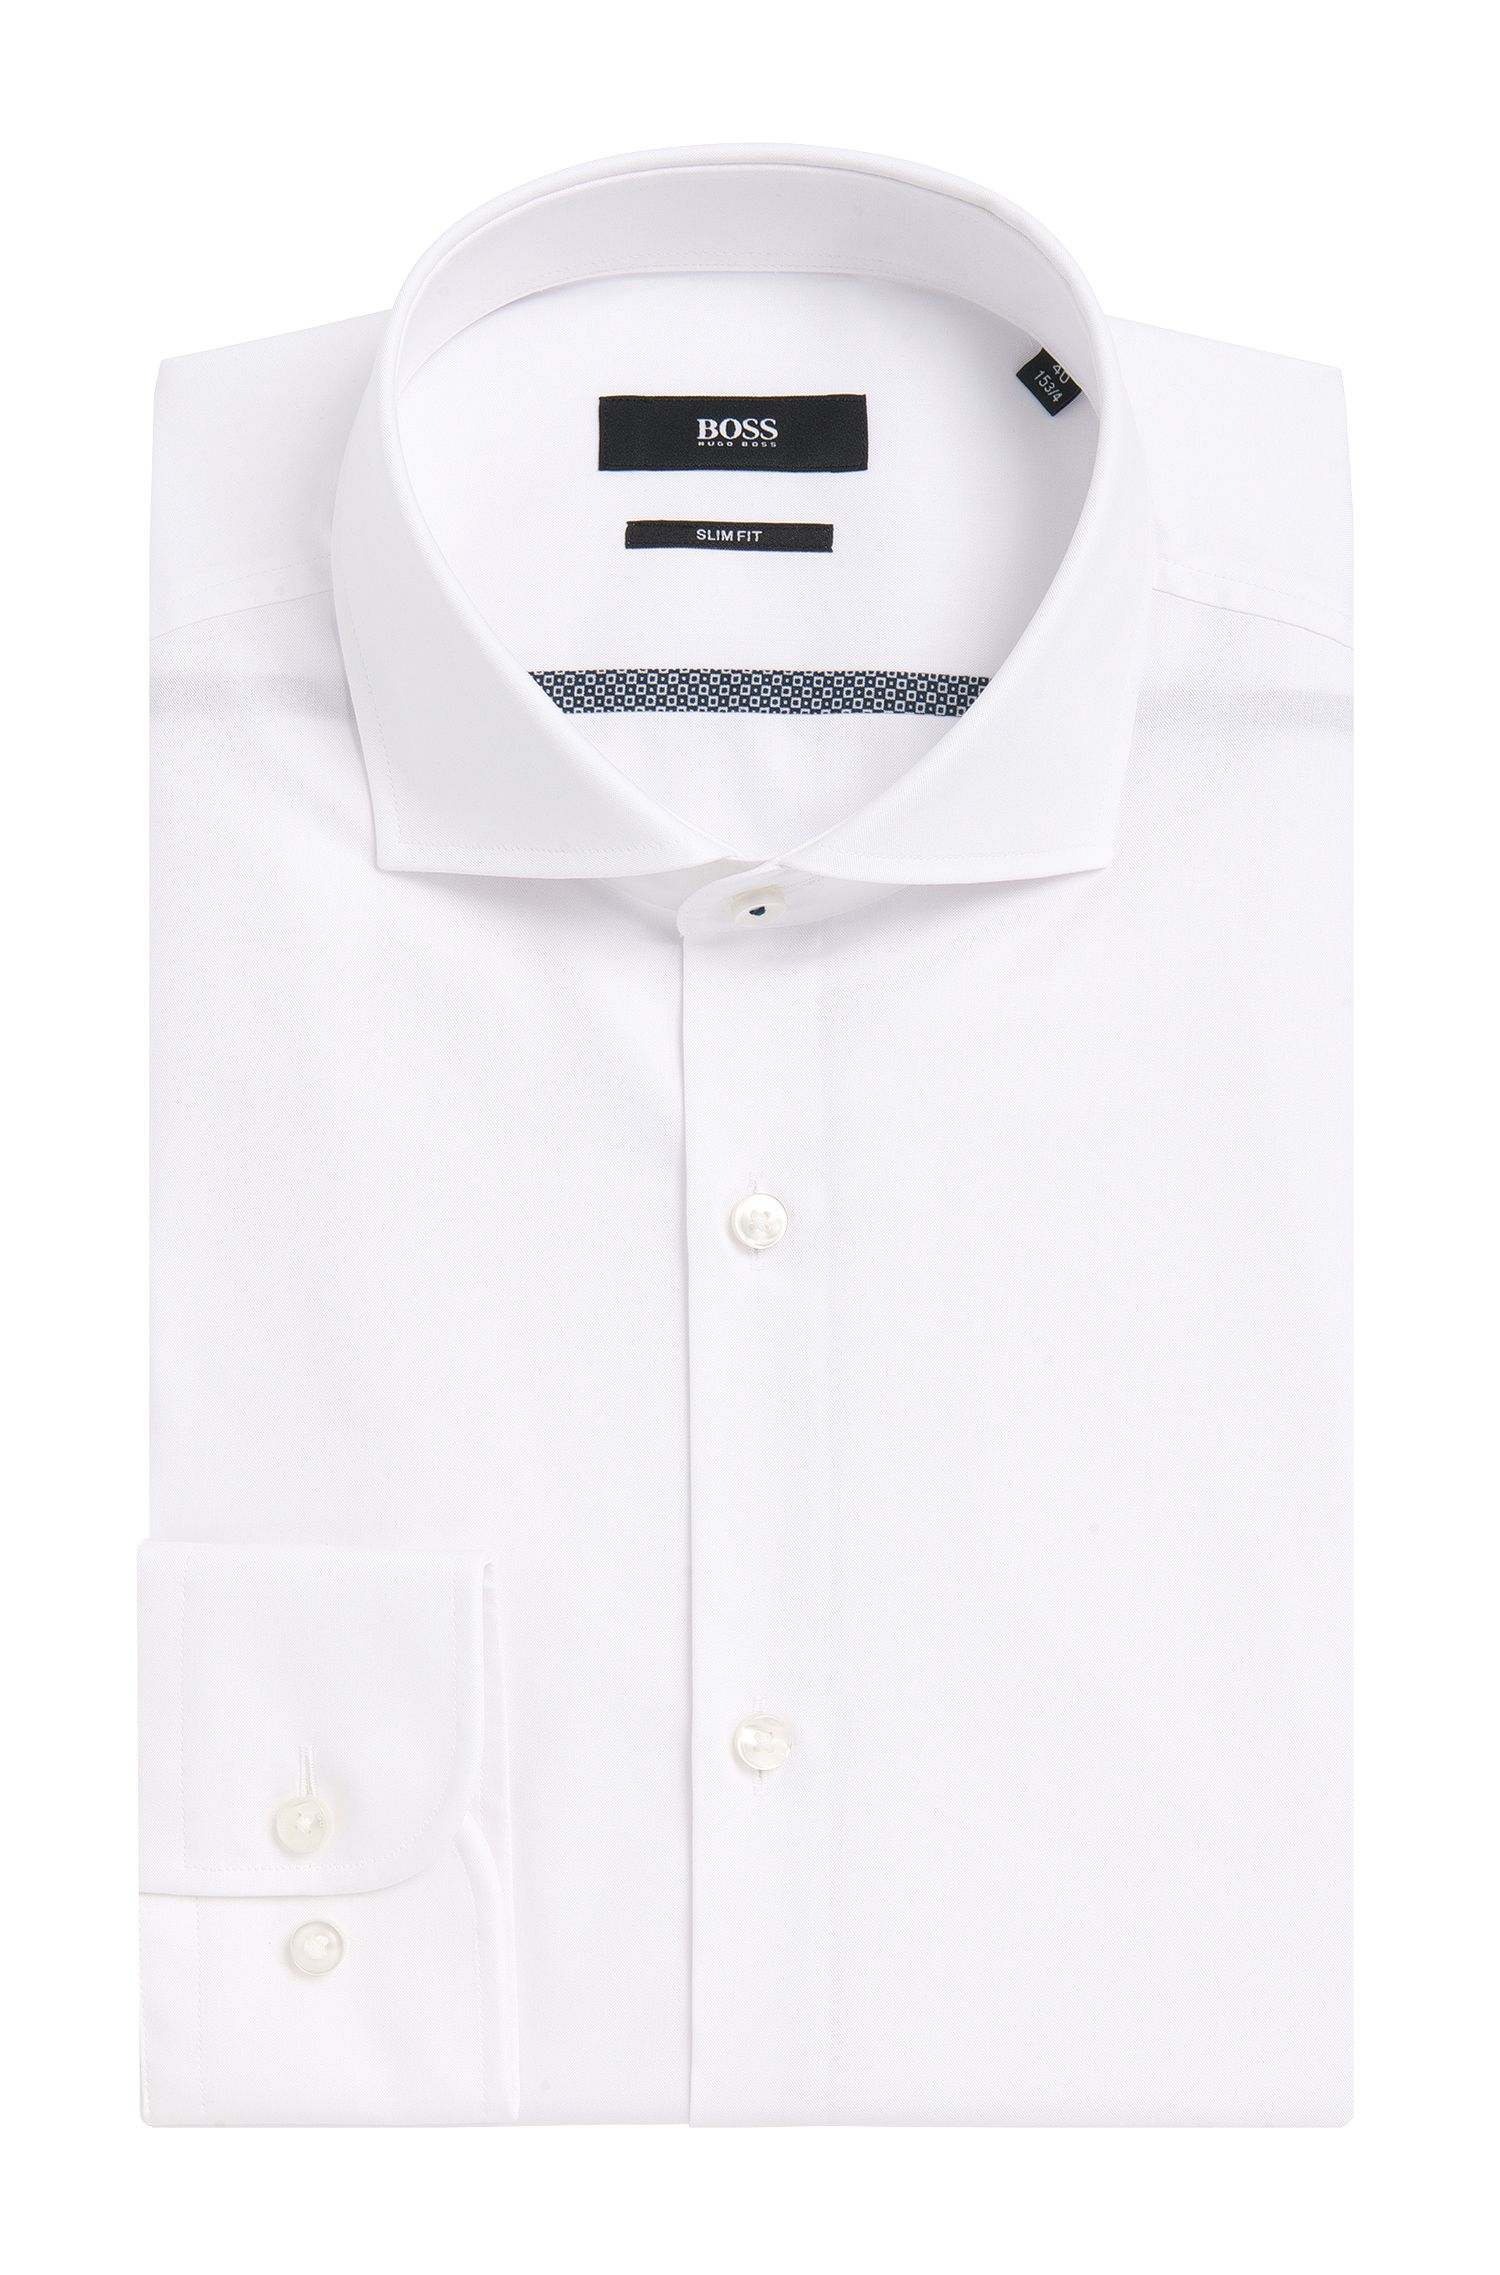 'Jerrin' | Slim Fit, Easy Iron Italian Cotton Dress Shirt